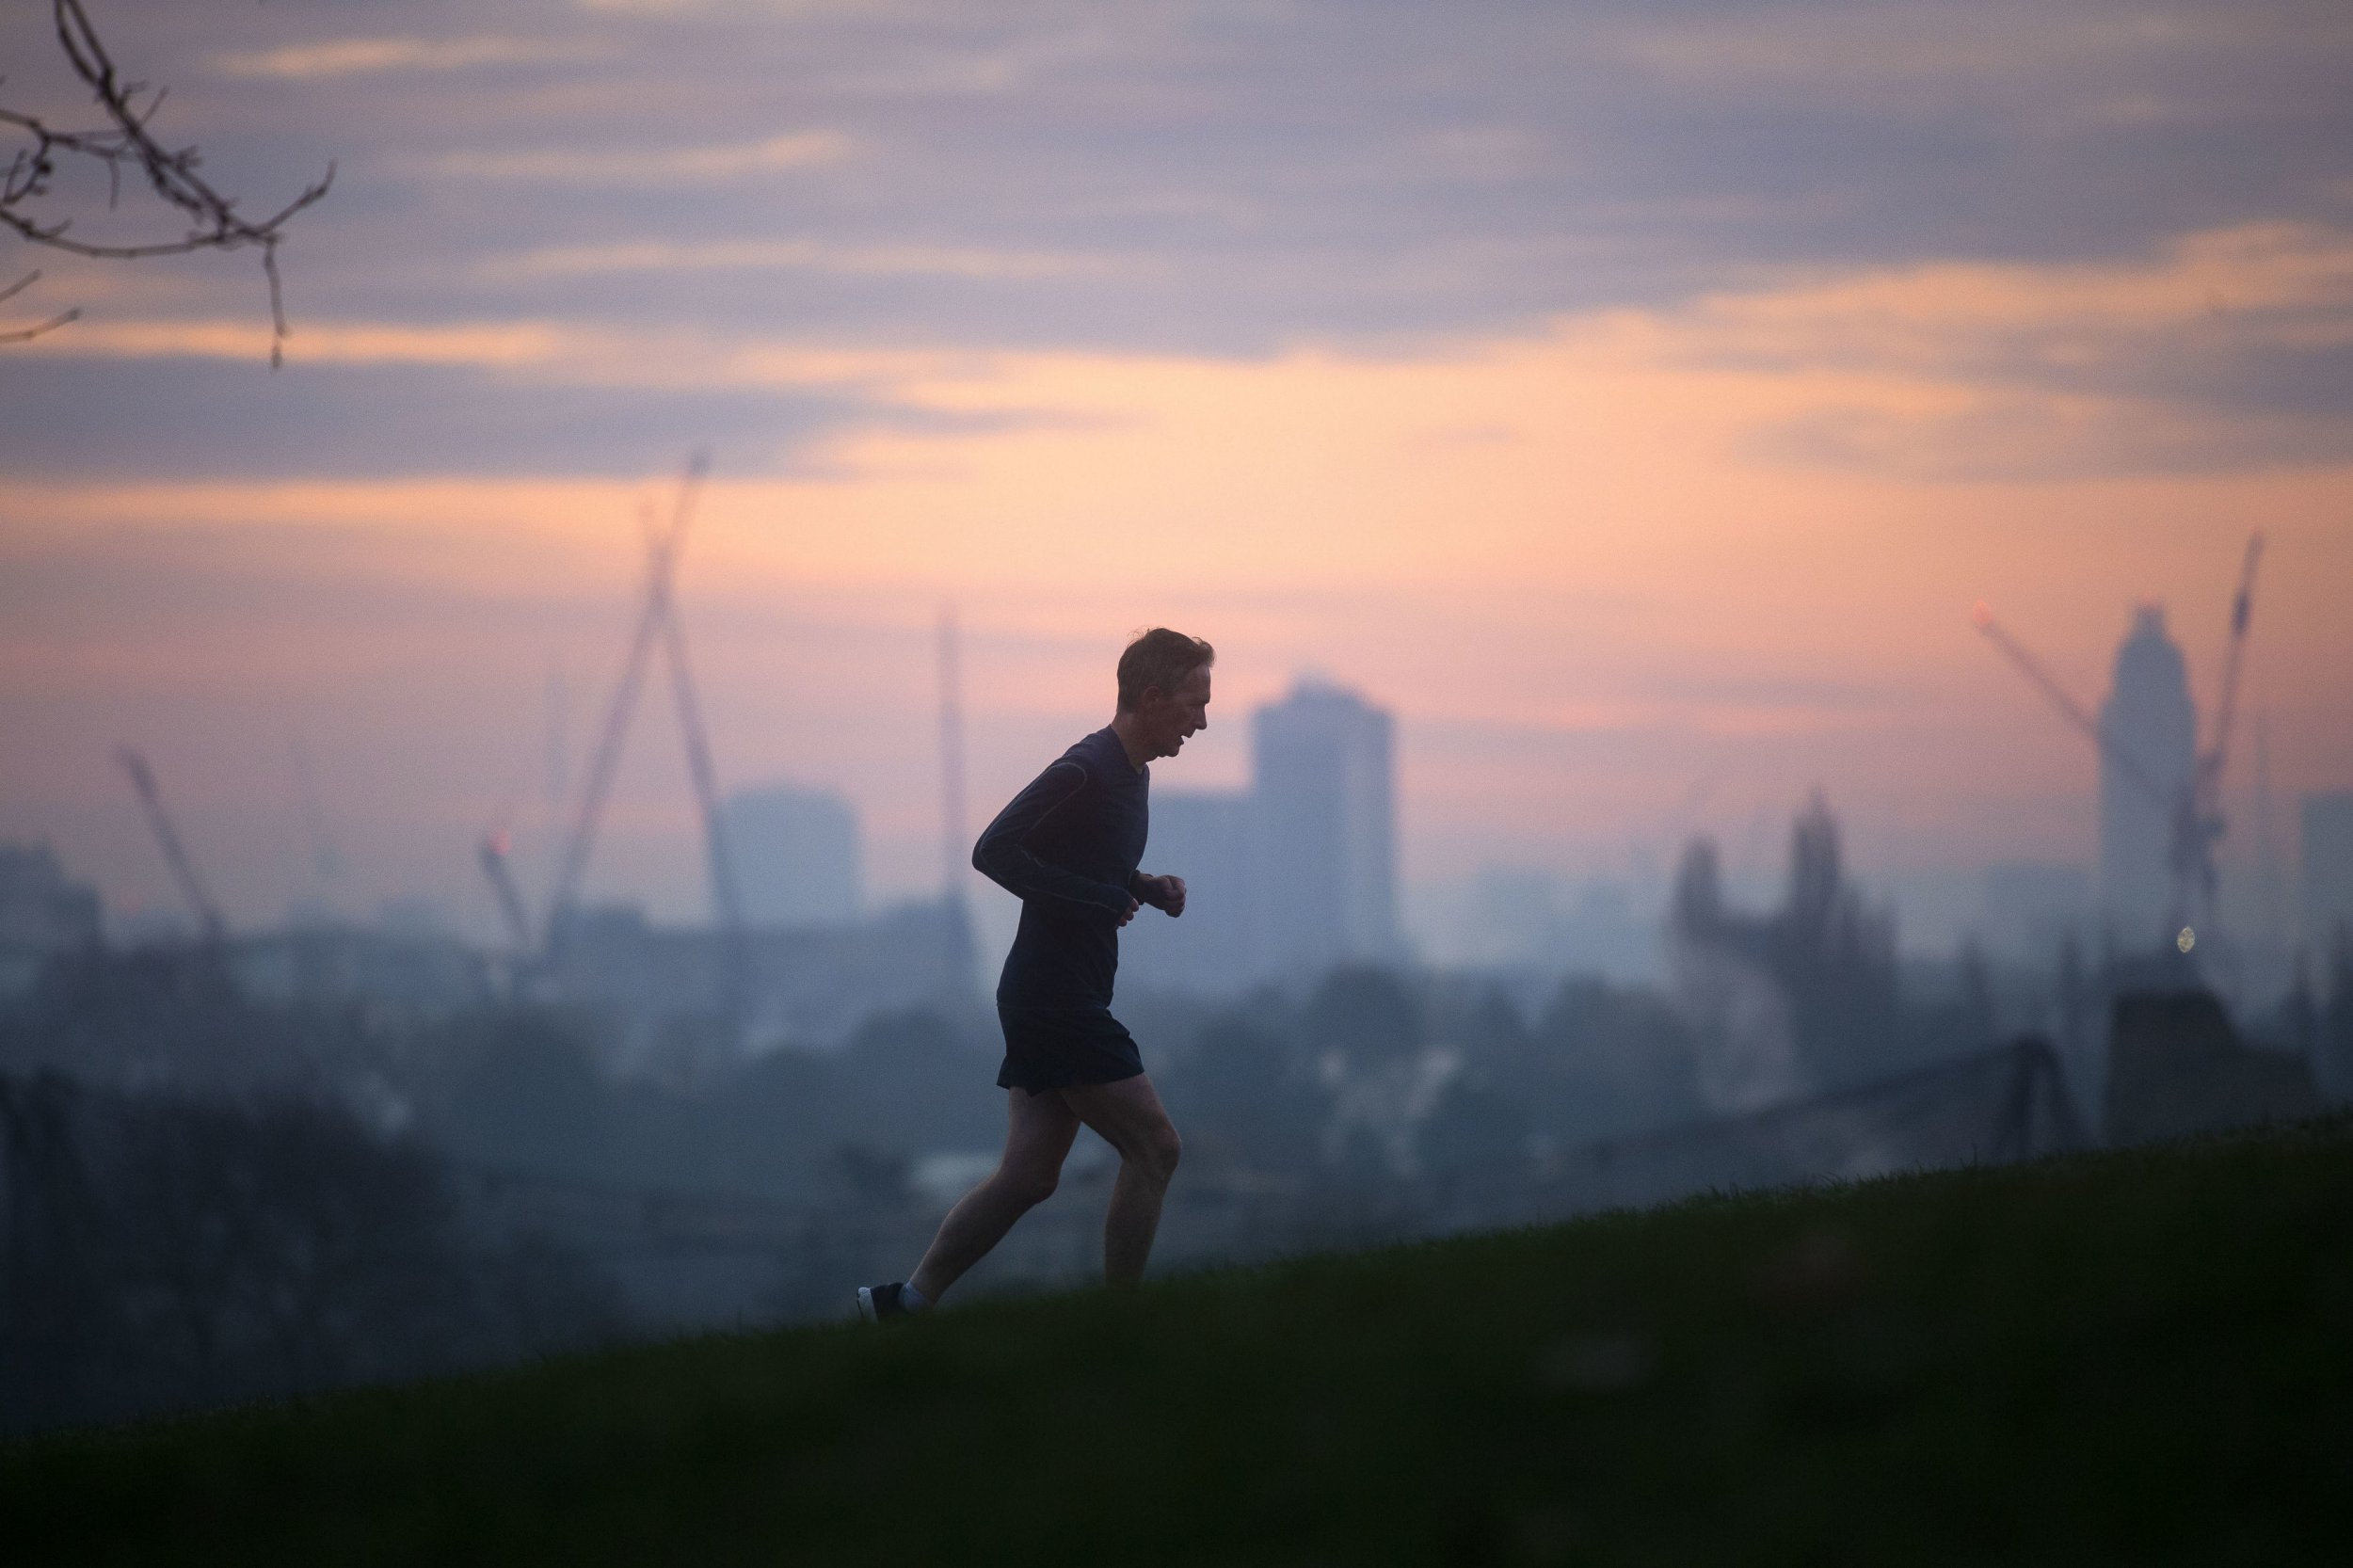 Early risers less prone to mental health problems, study claims